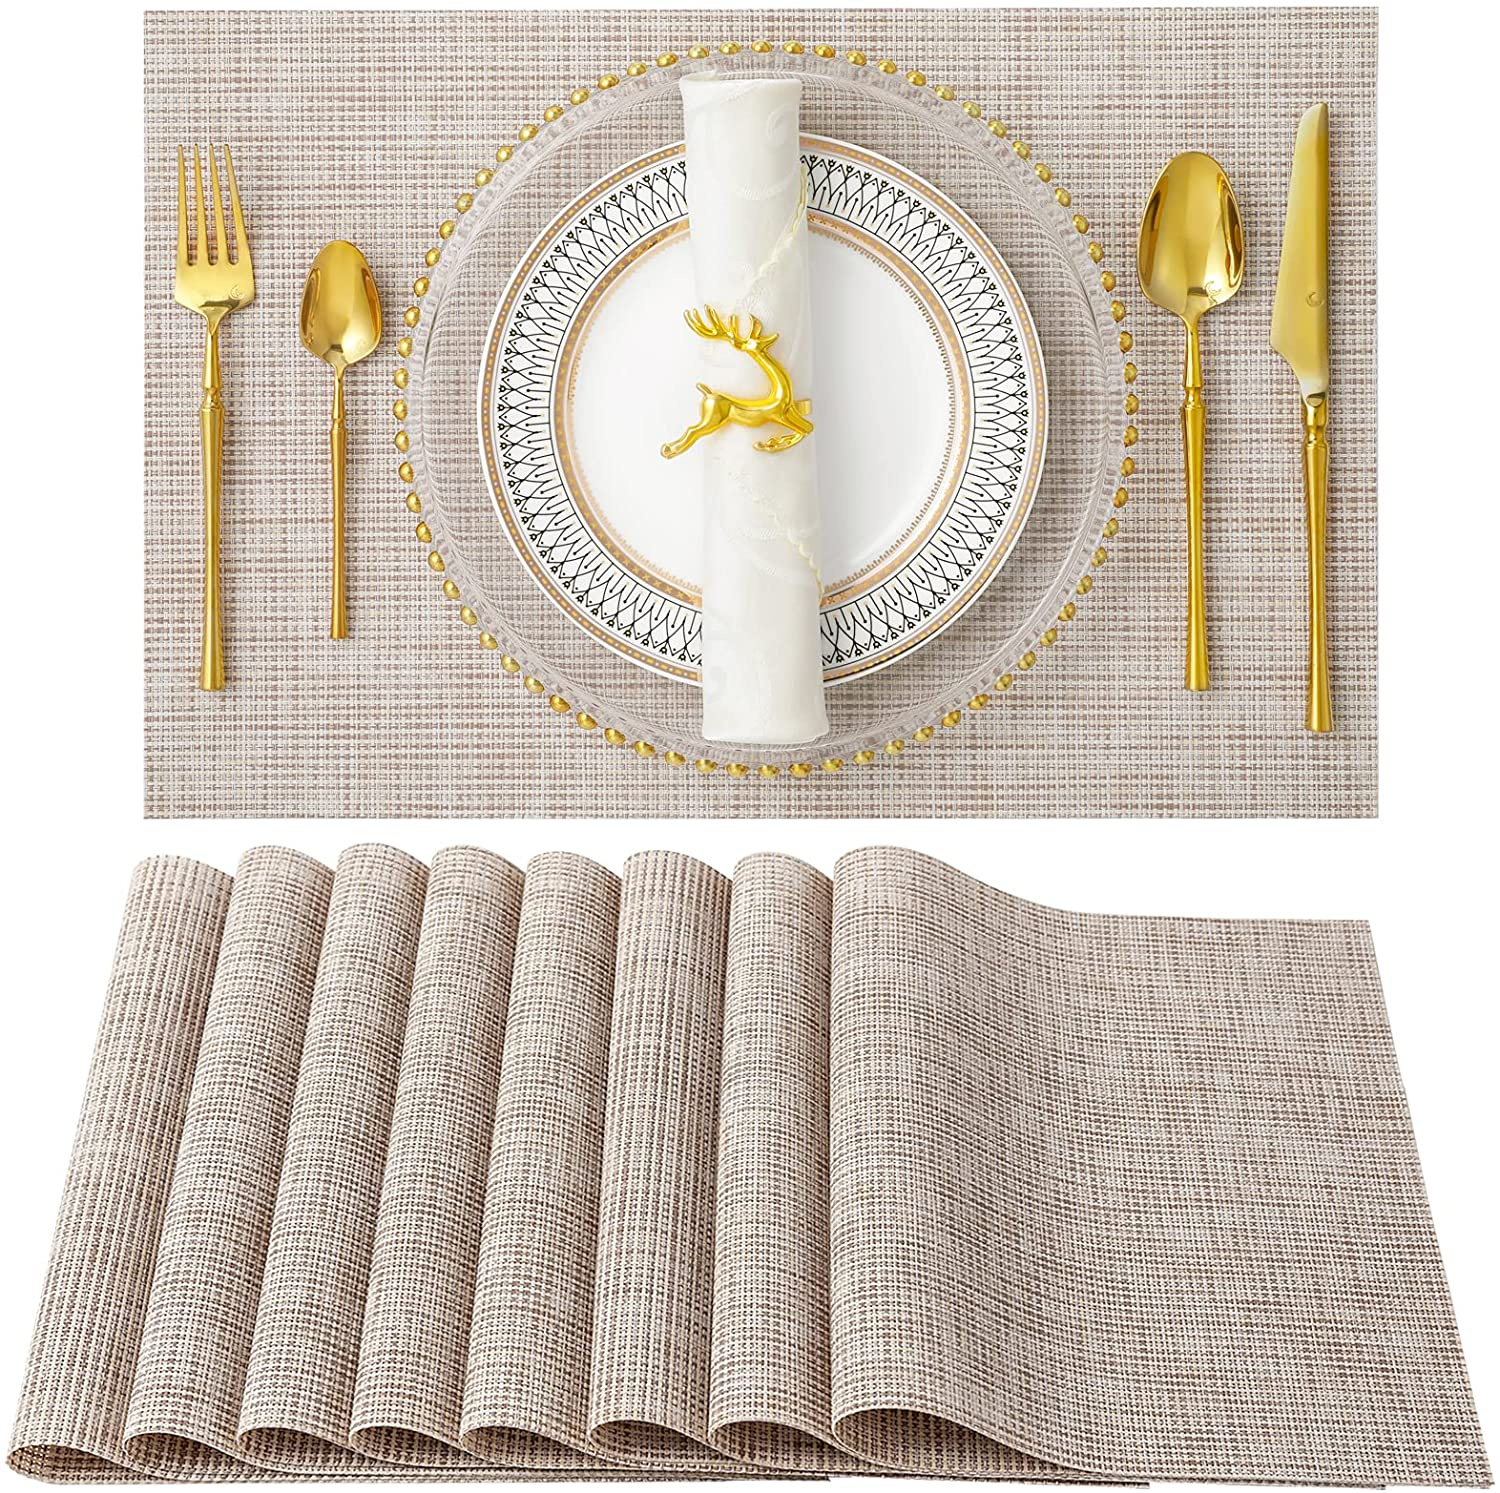 SD Senday Heat Resistant Placemats